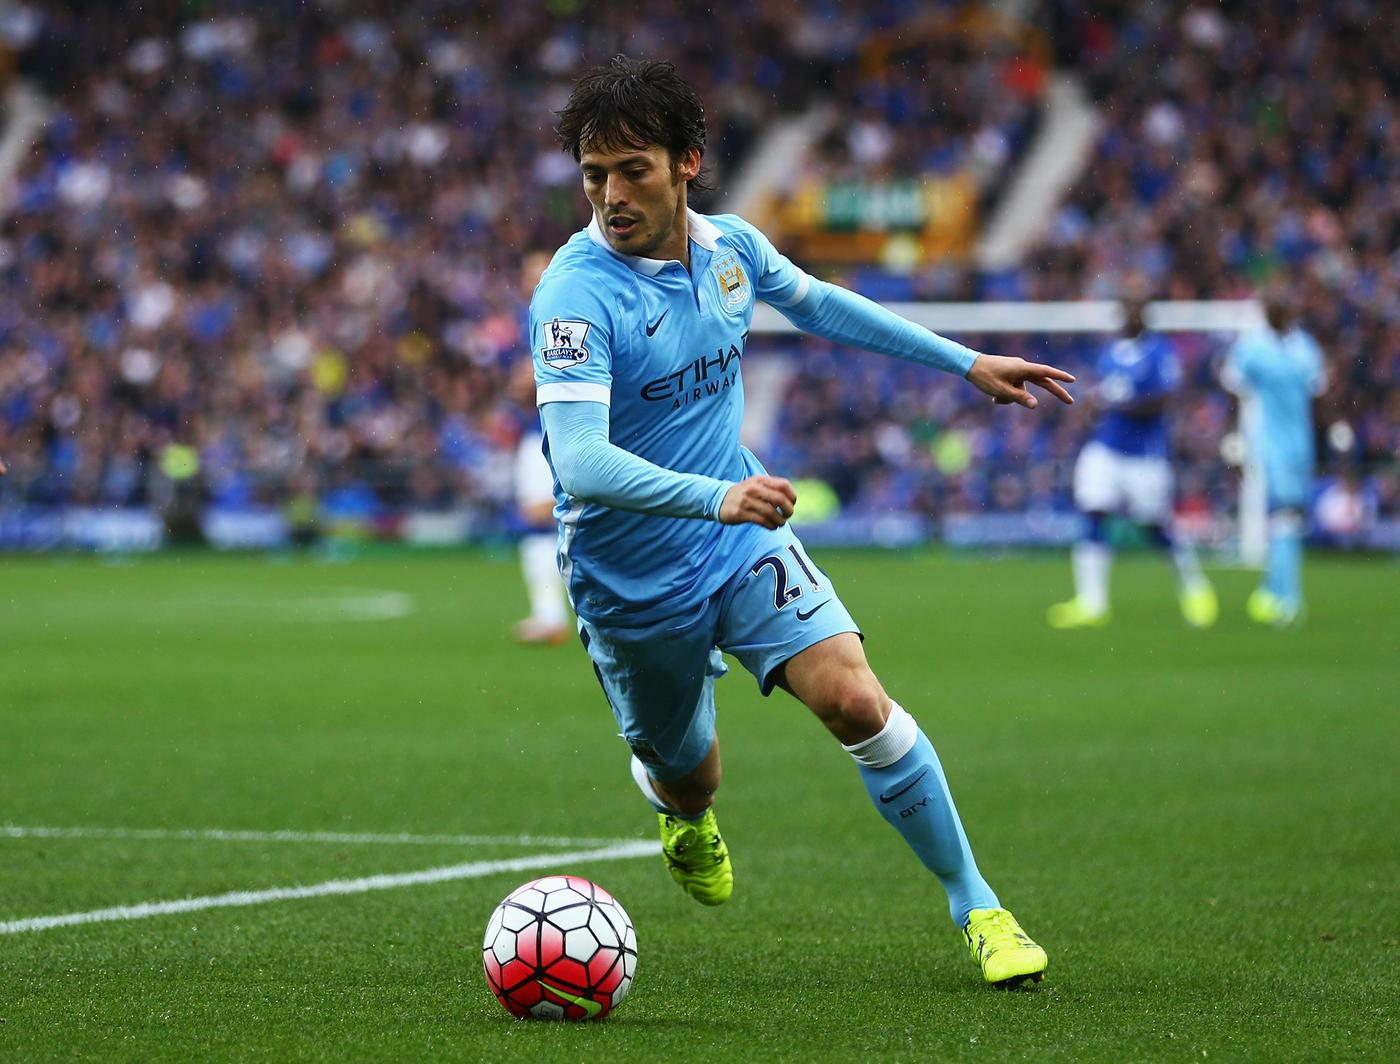 Signing Manchester City midfielder David Silva would win Real Madrid the Champions League